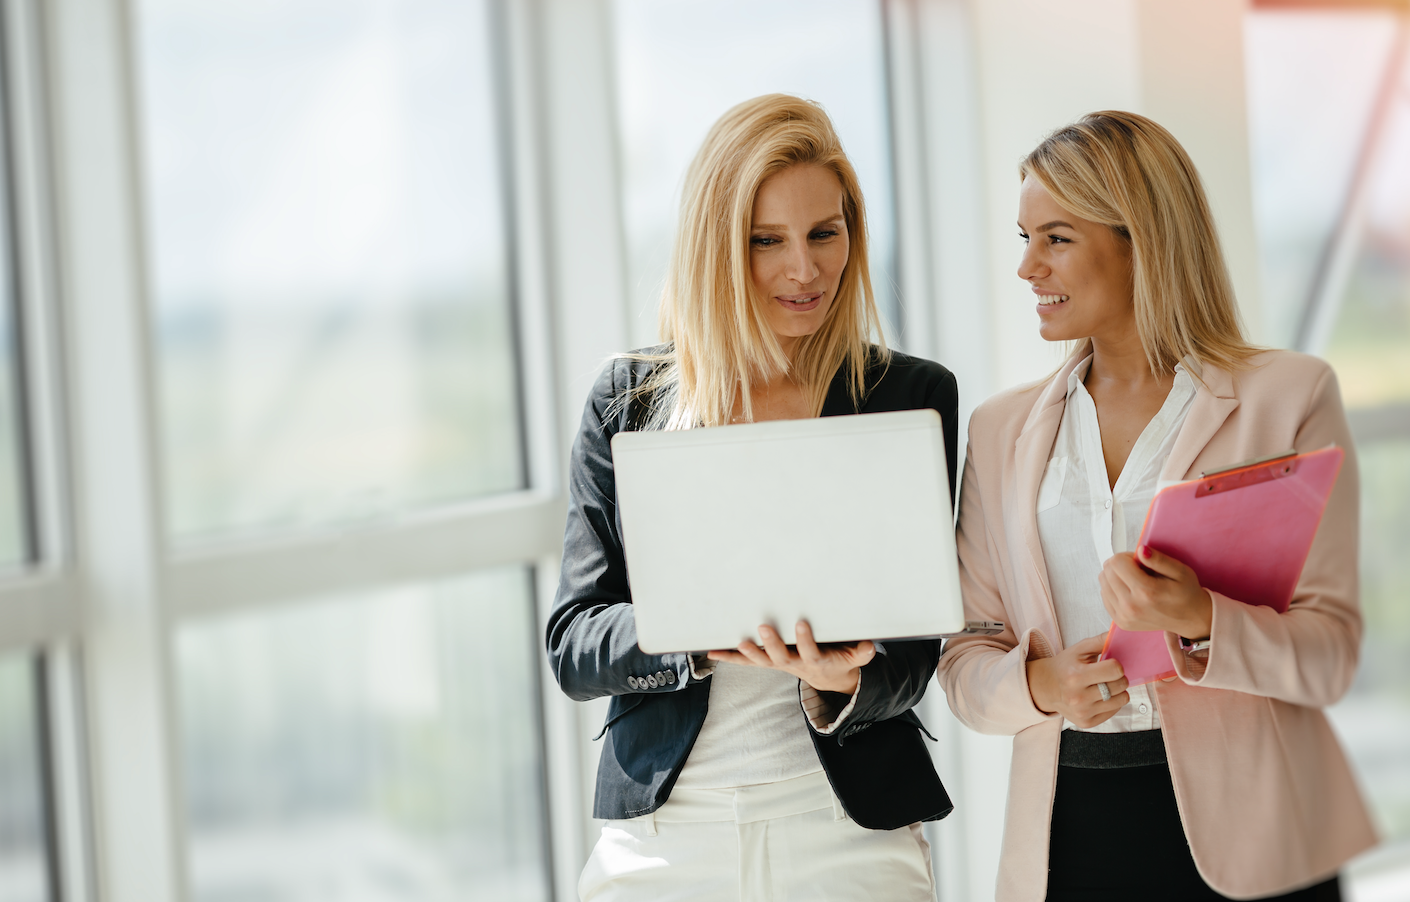 Quest Workspaces in South Florida Business Journal's Top 25 Women-Owned Businesses